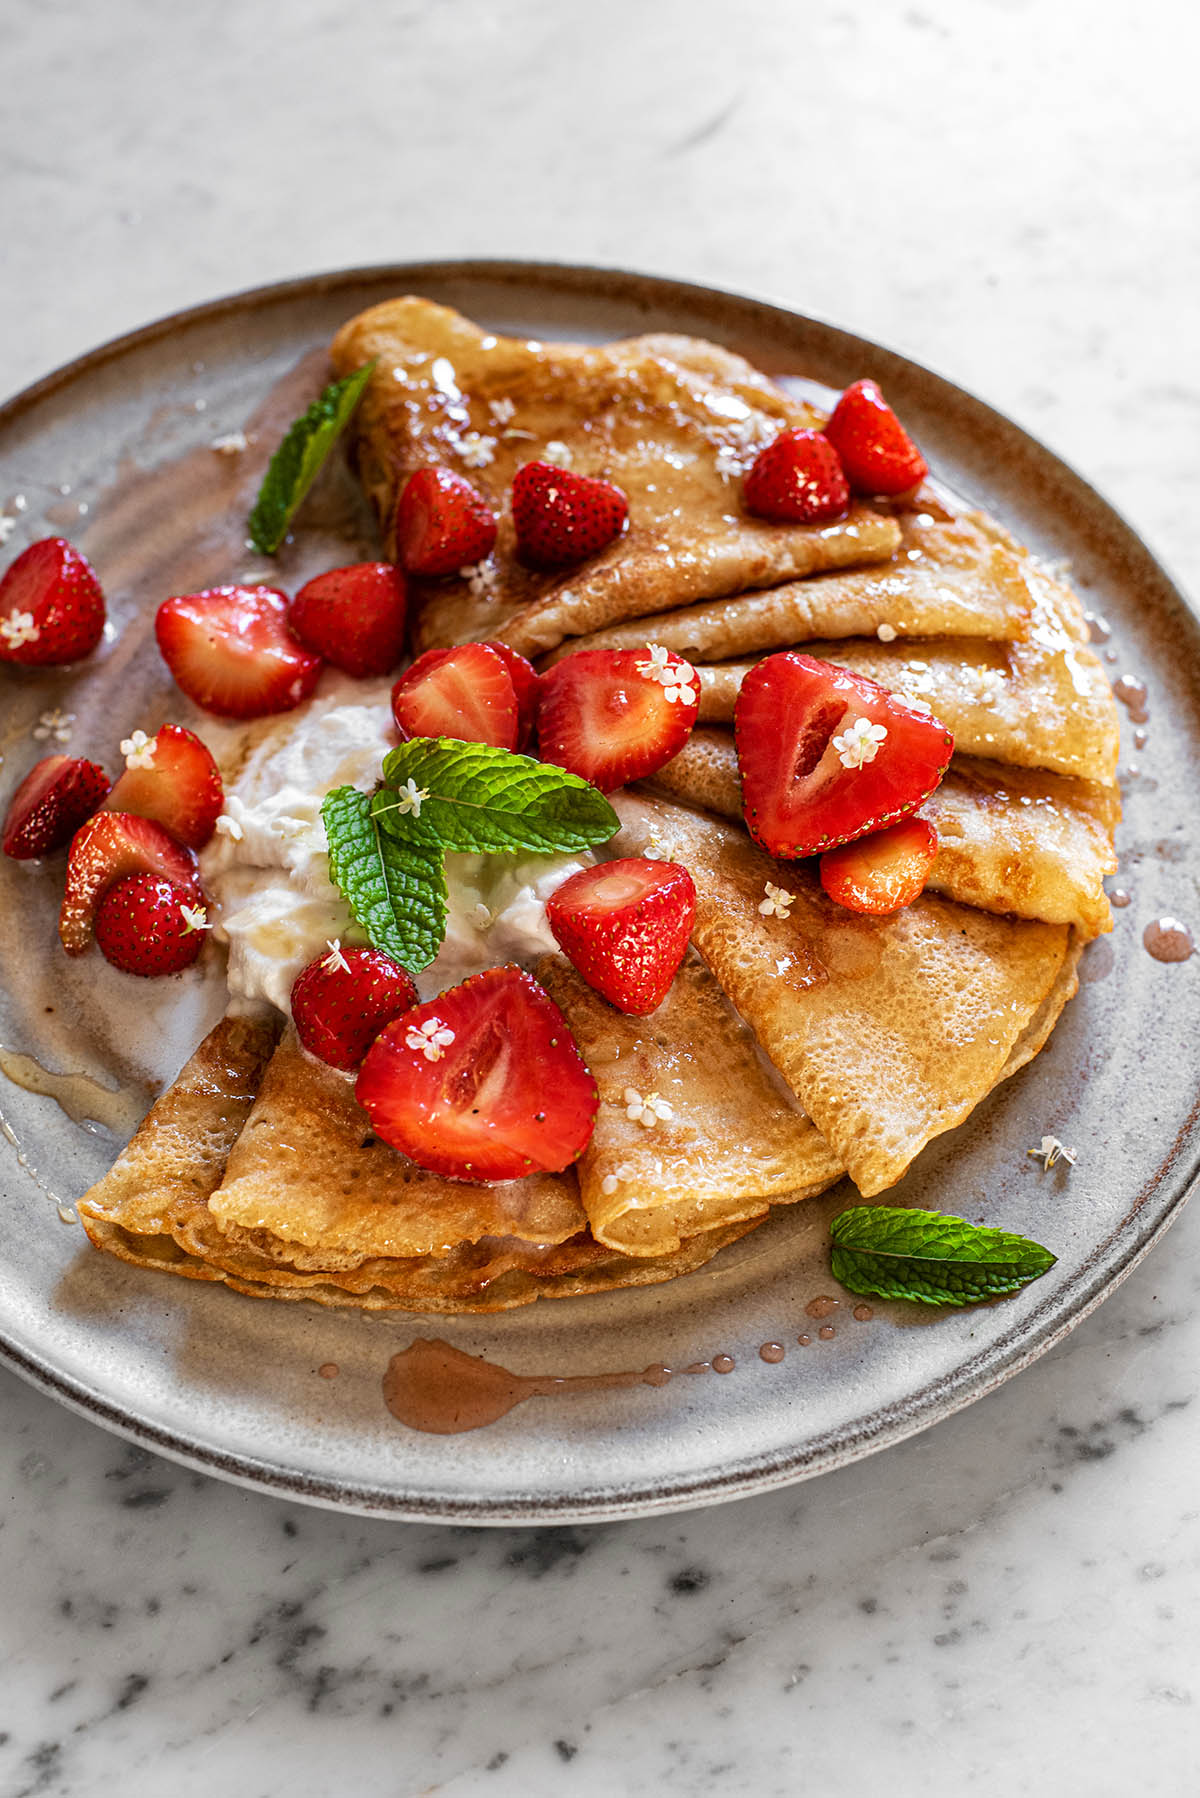 Sourdough crepes topped with fresh strawberries and cream on a ceramic plate.